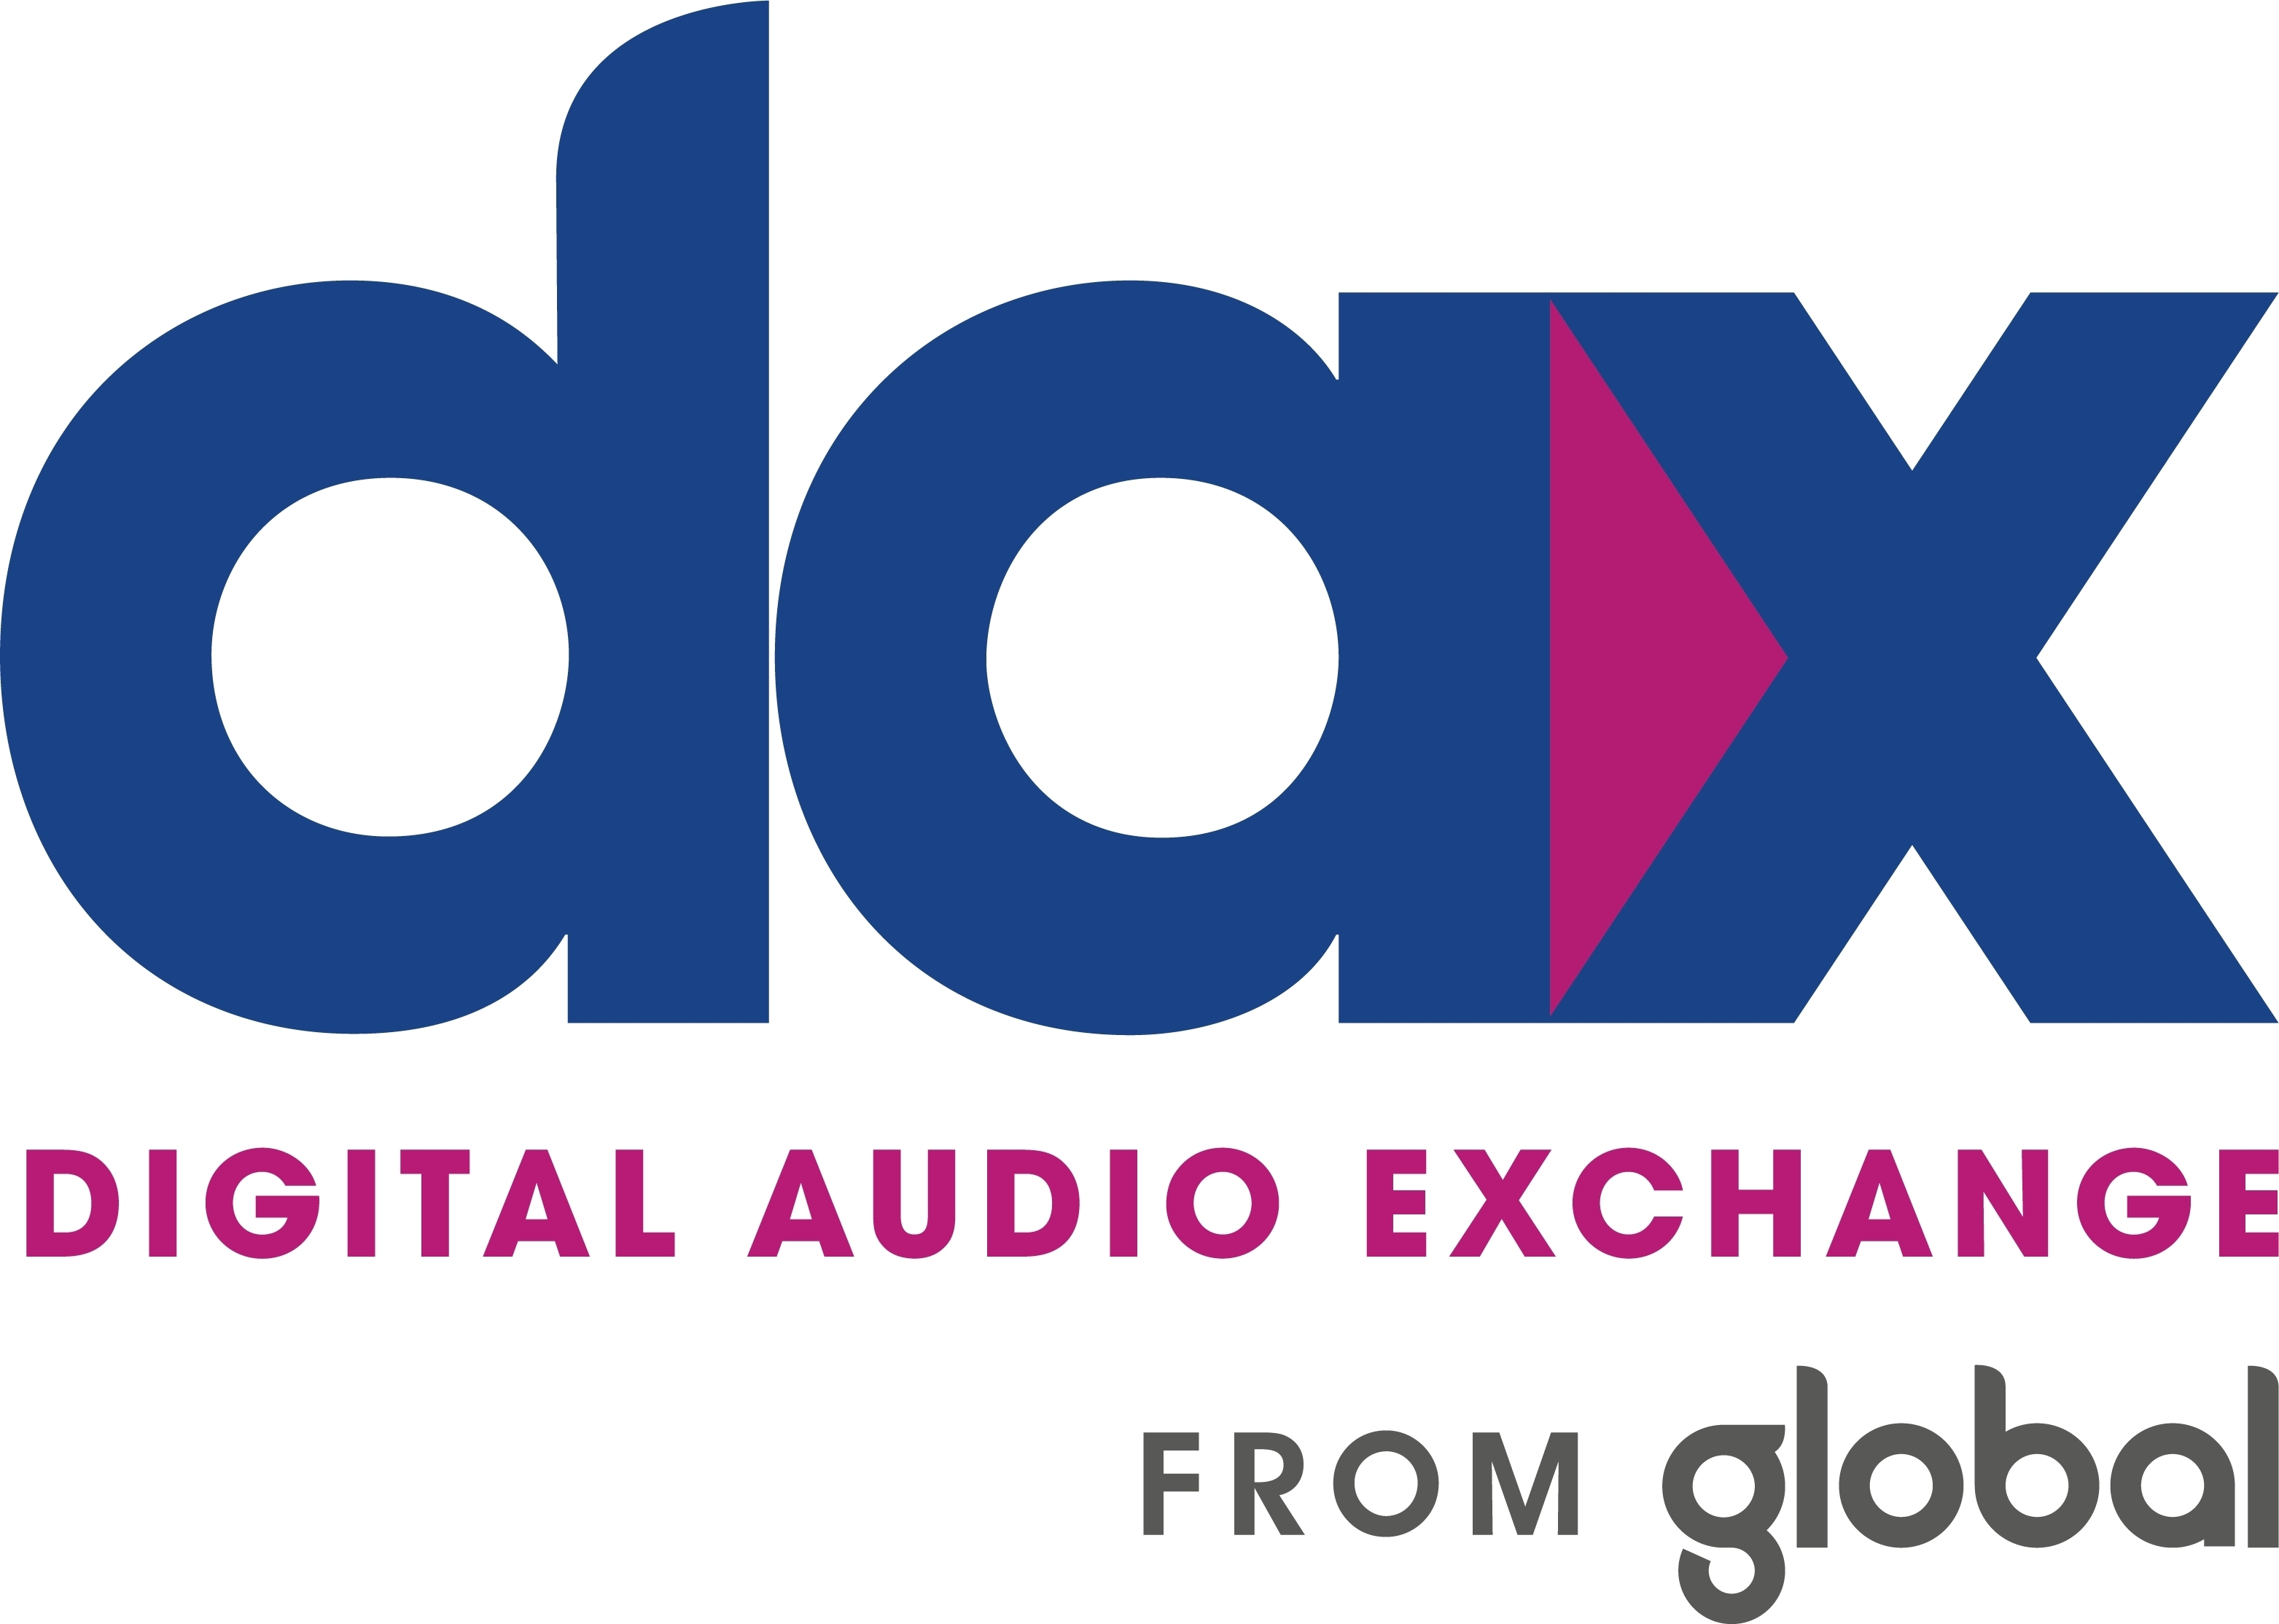 DAX And Urban One Ink Radio, Programmatic Deal | DeviceDaily.com